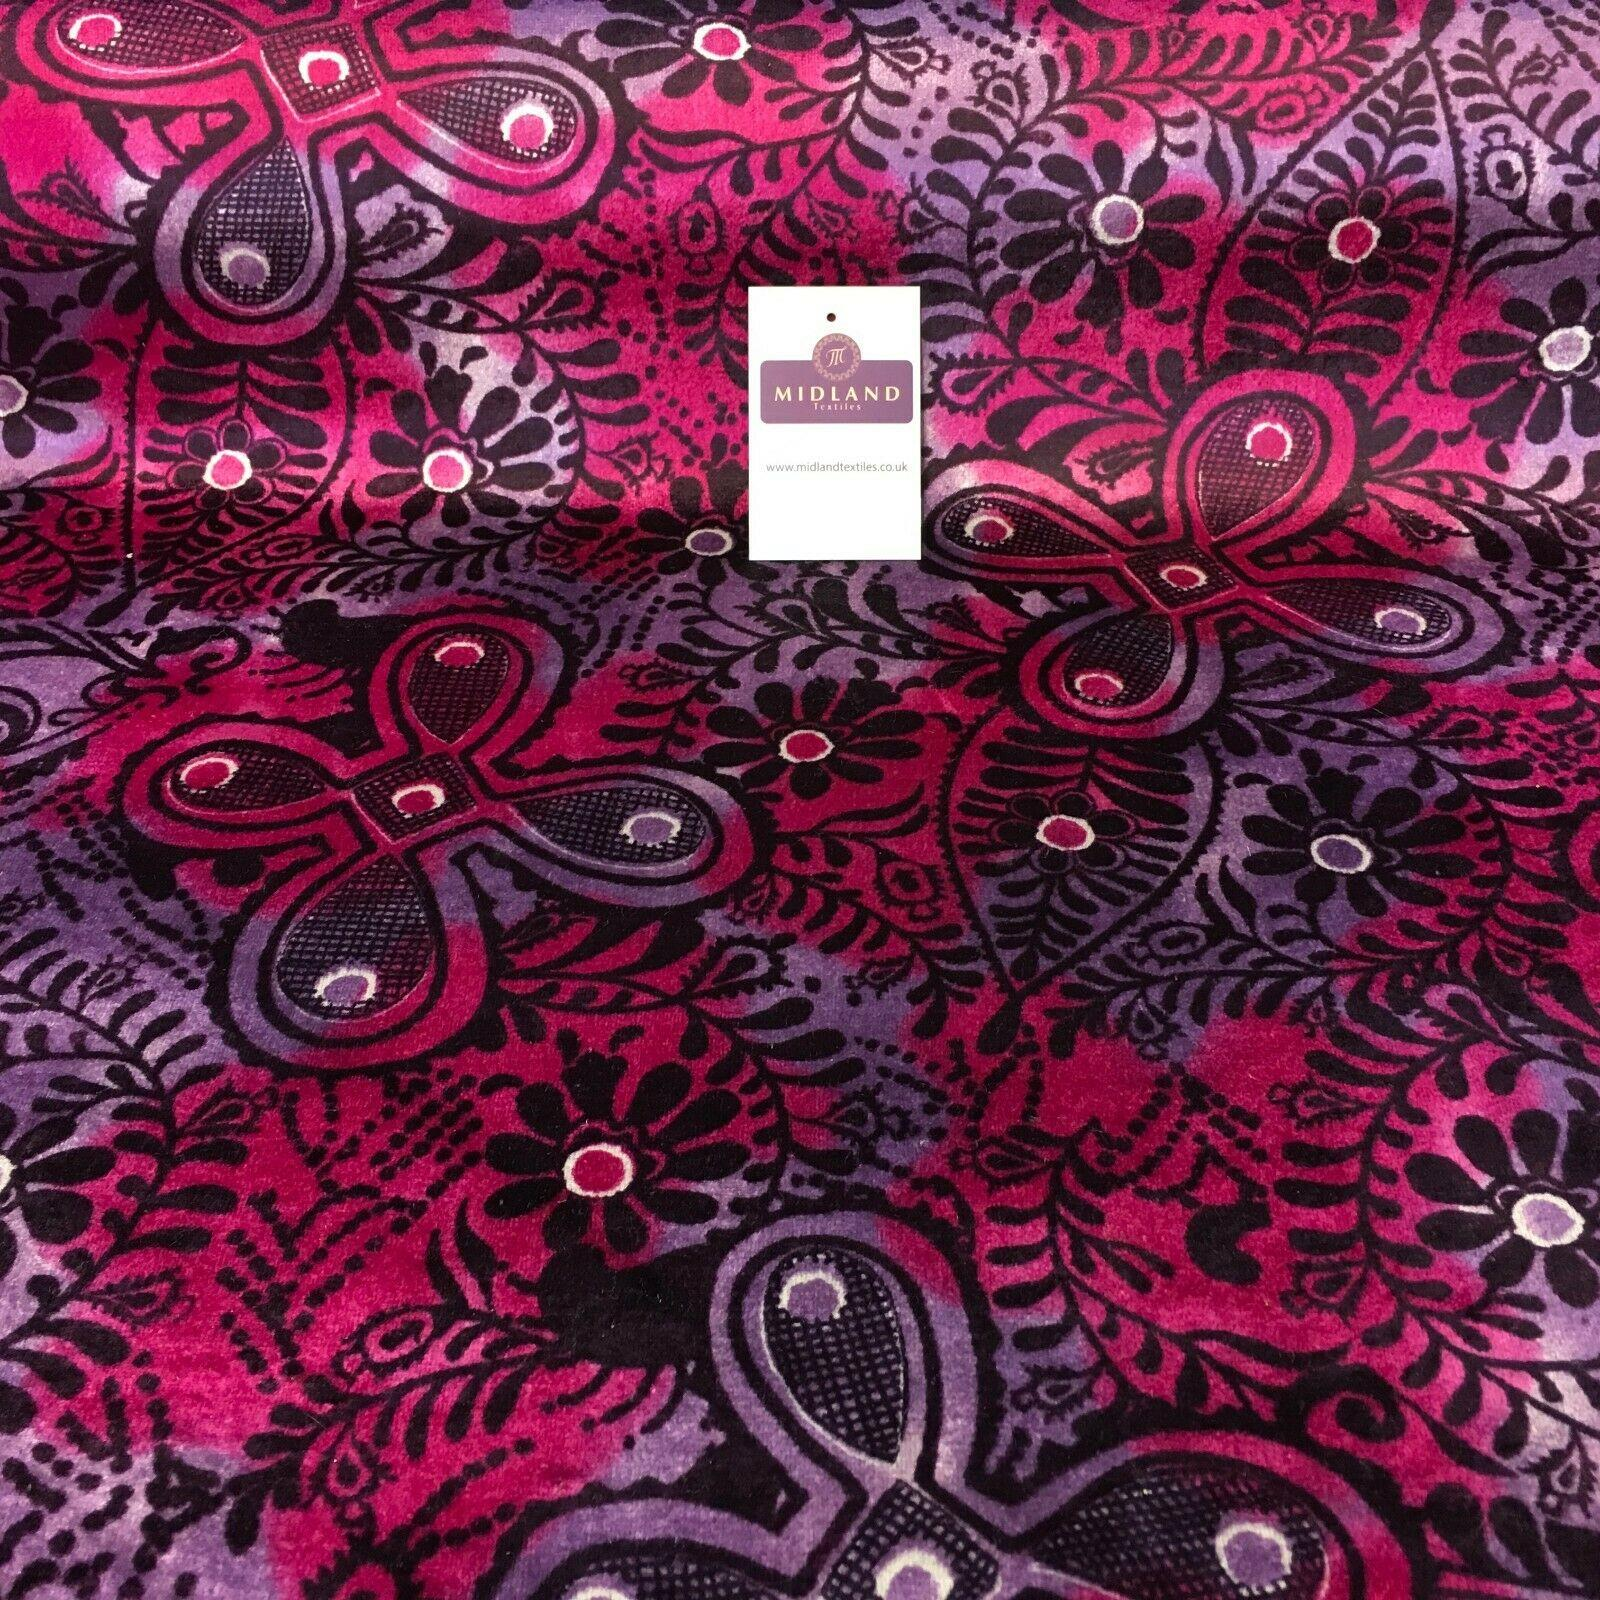 Pink Lavender Paisley Printed Velvet Dress Fabric 147 cm wide M16-36